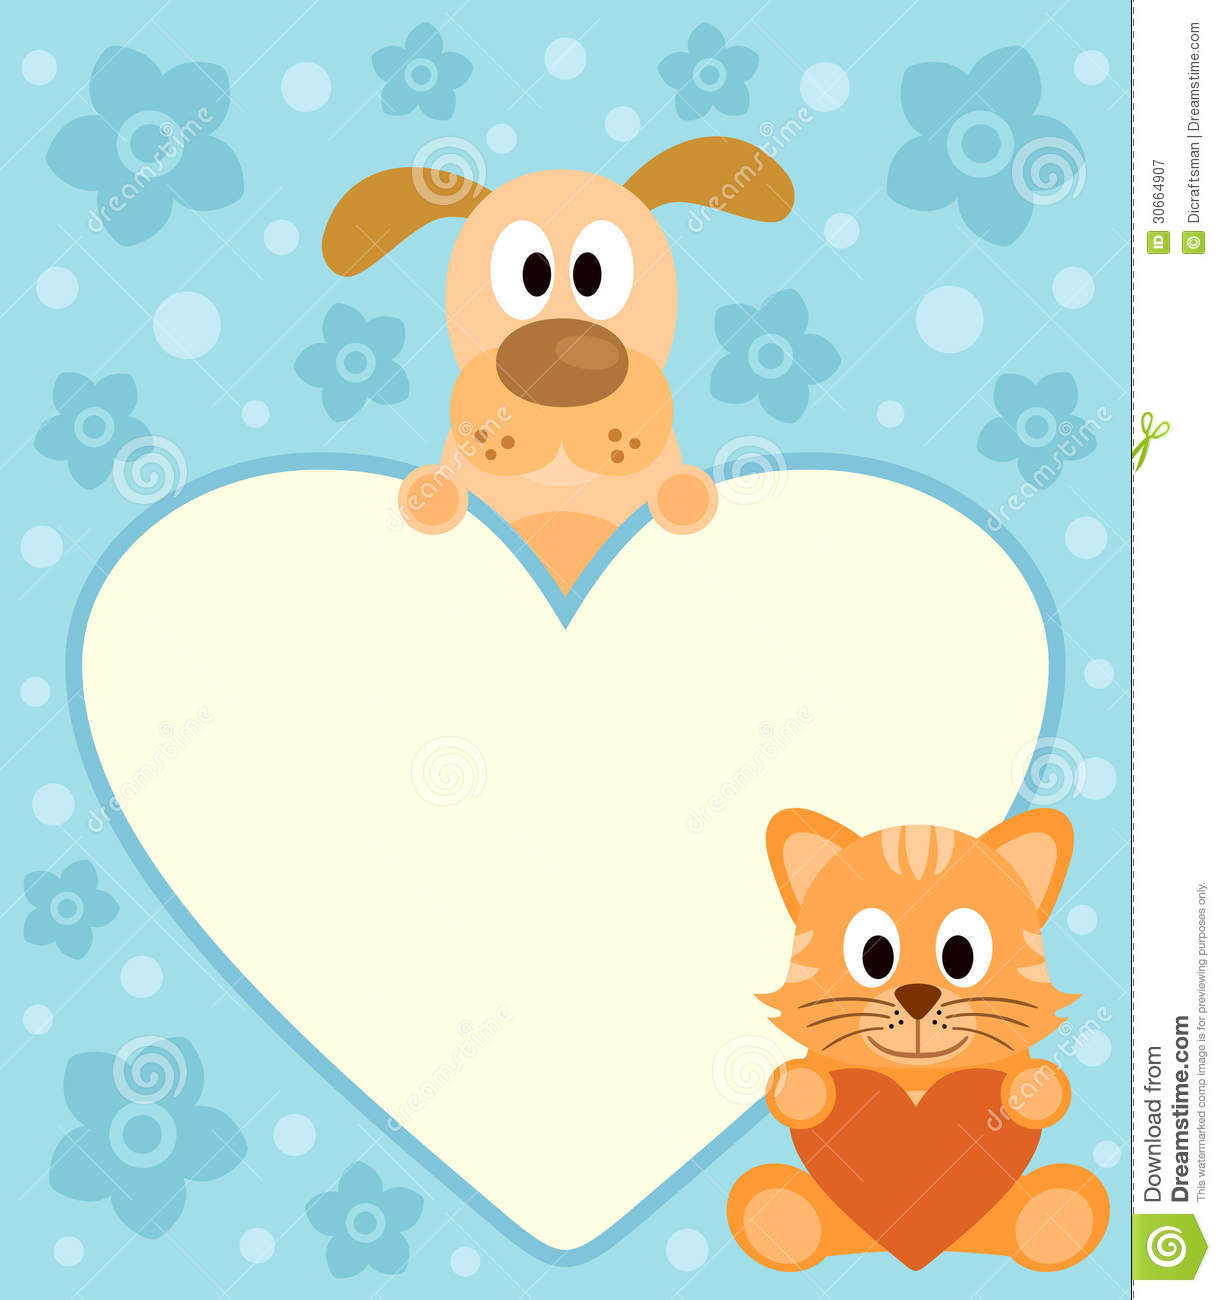 Background Card With Cartoon Dog And Cat Royalty Free Stock Photography - Image: 30664907